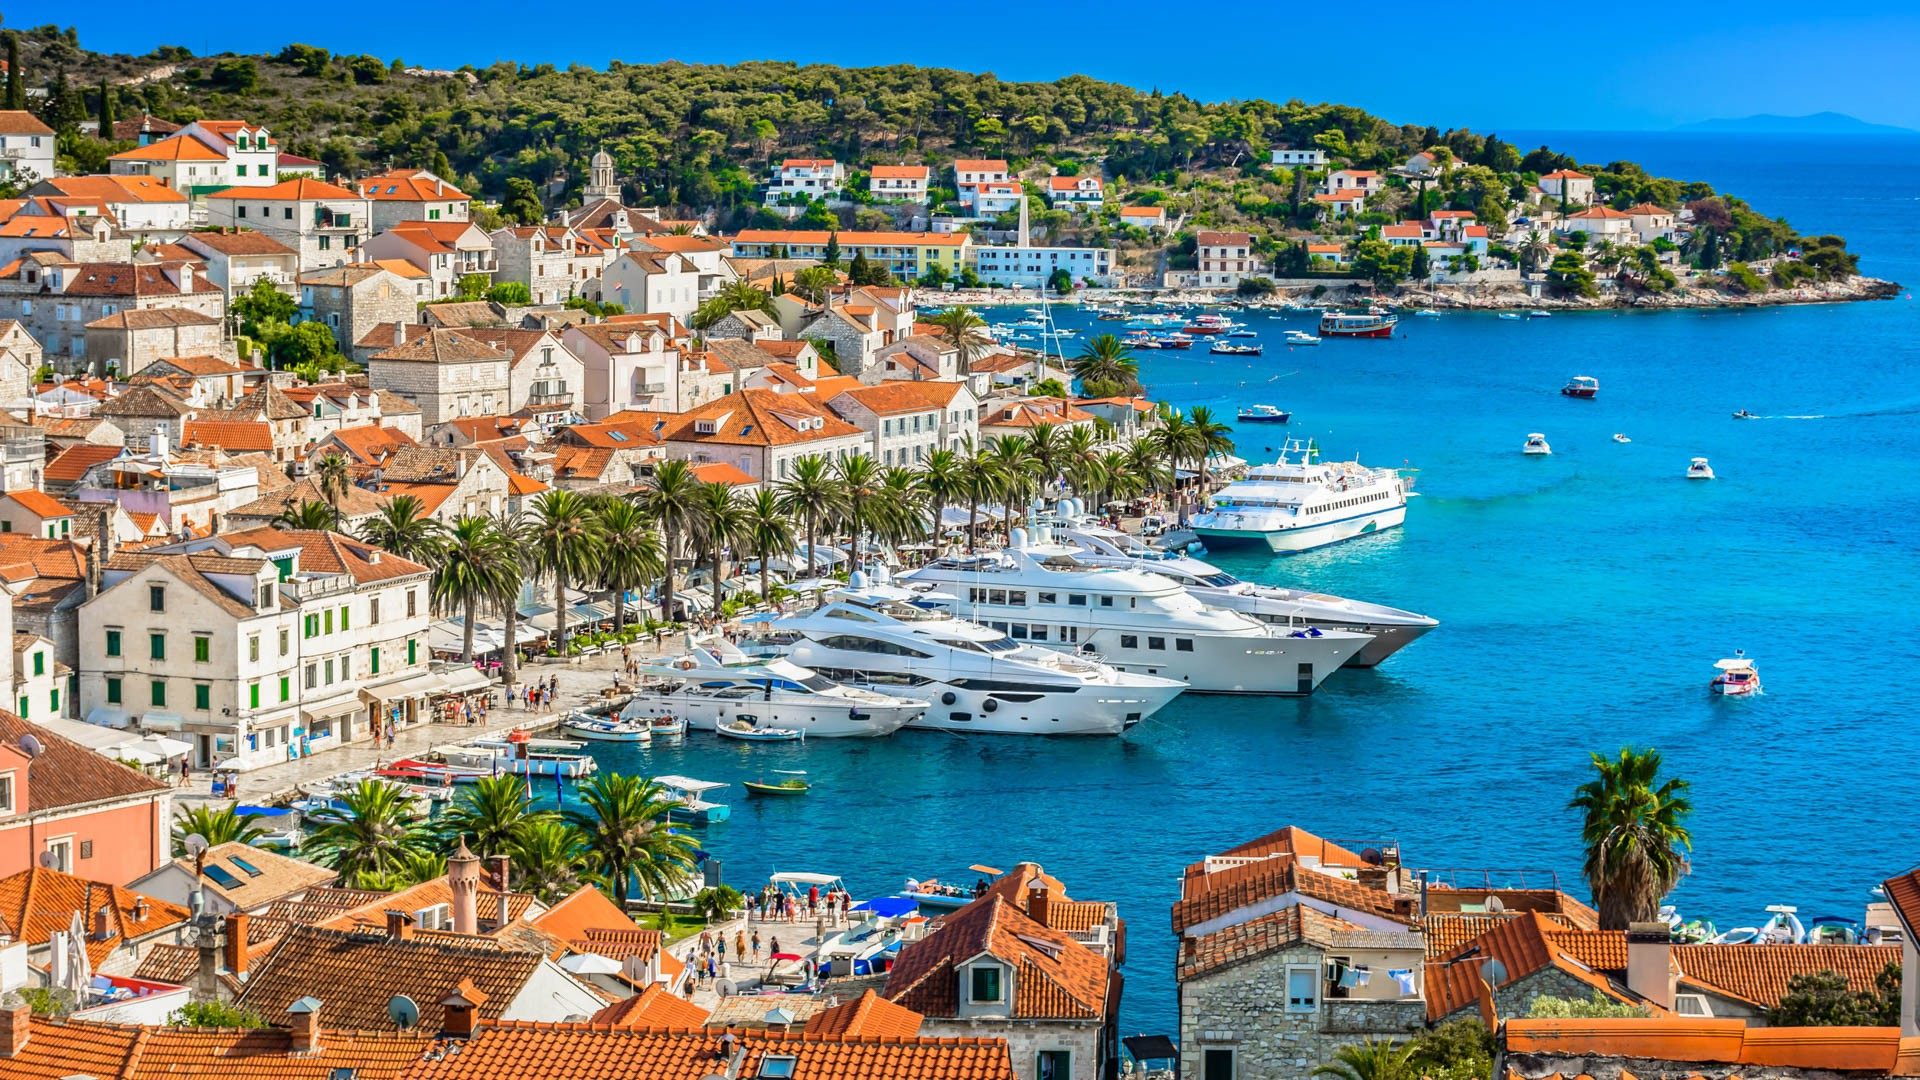 Hvar - Adriatic Sea | Croatia Cruise Croatia Cruise